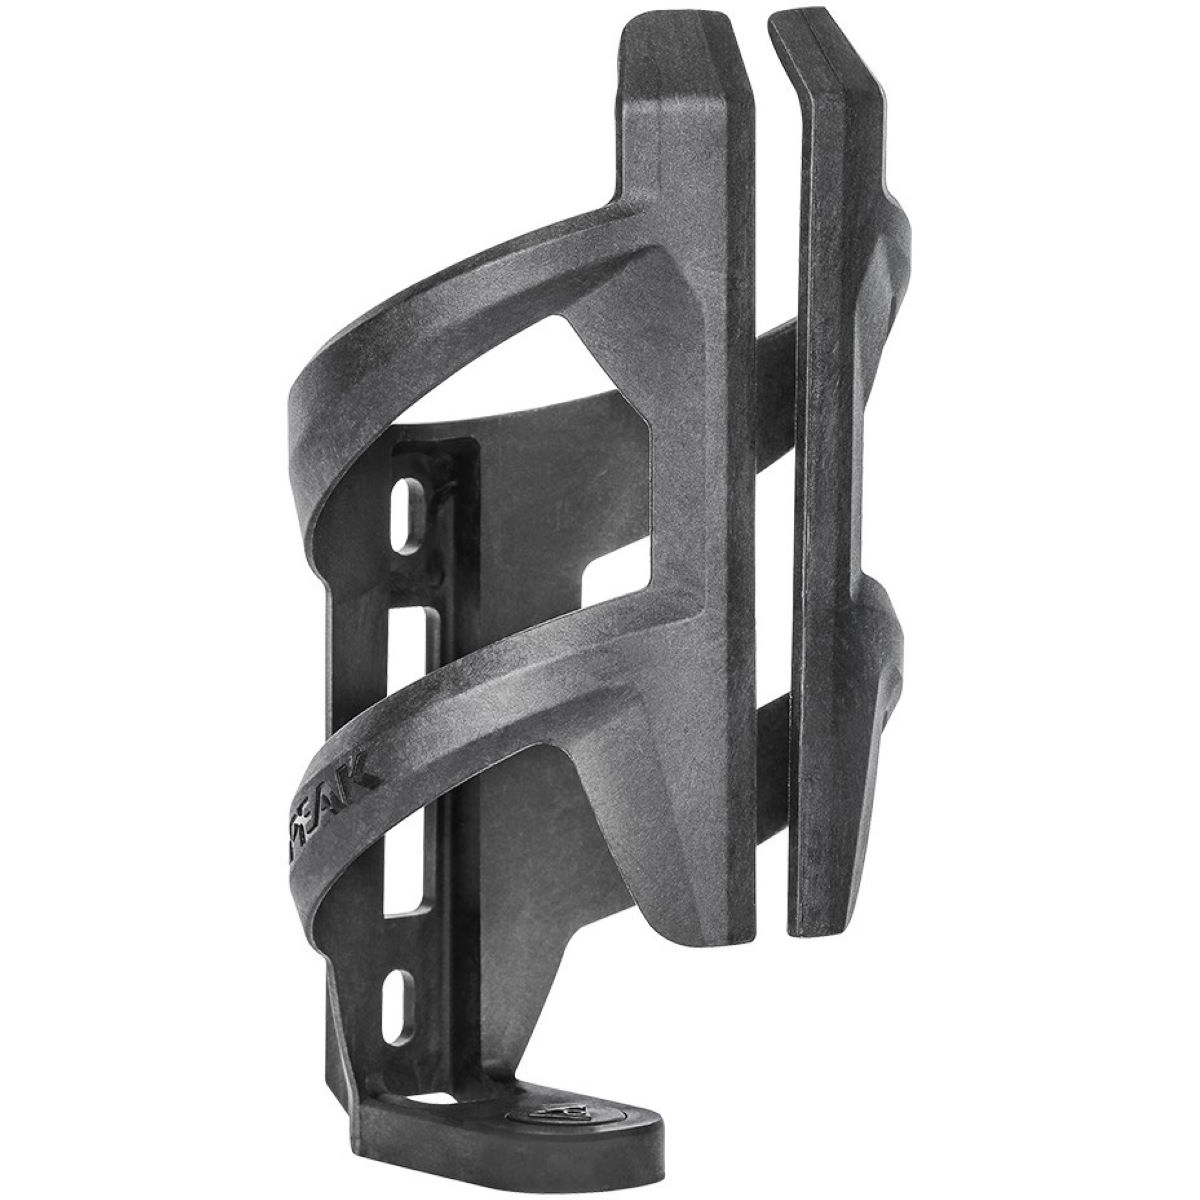 Topeak Tri- Cage Carbon Bottle Cage - One Size Black  Bottle Cages